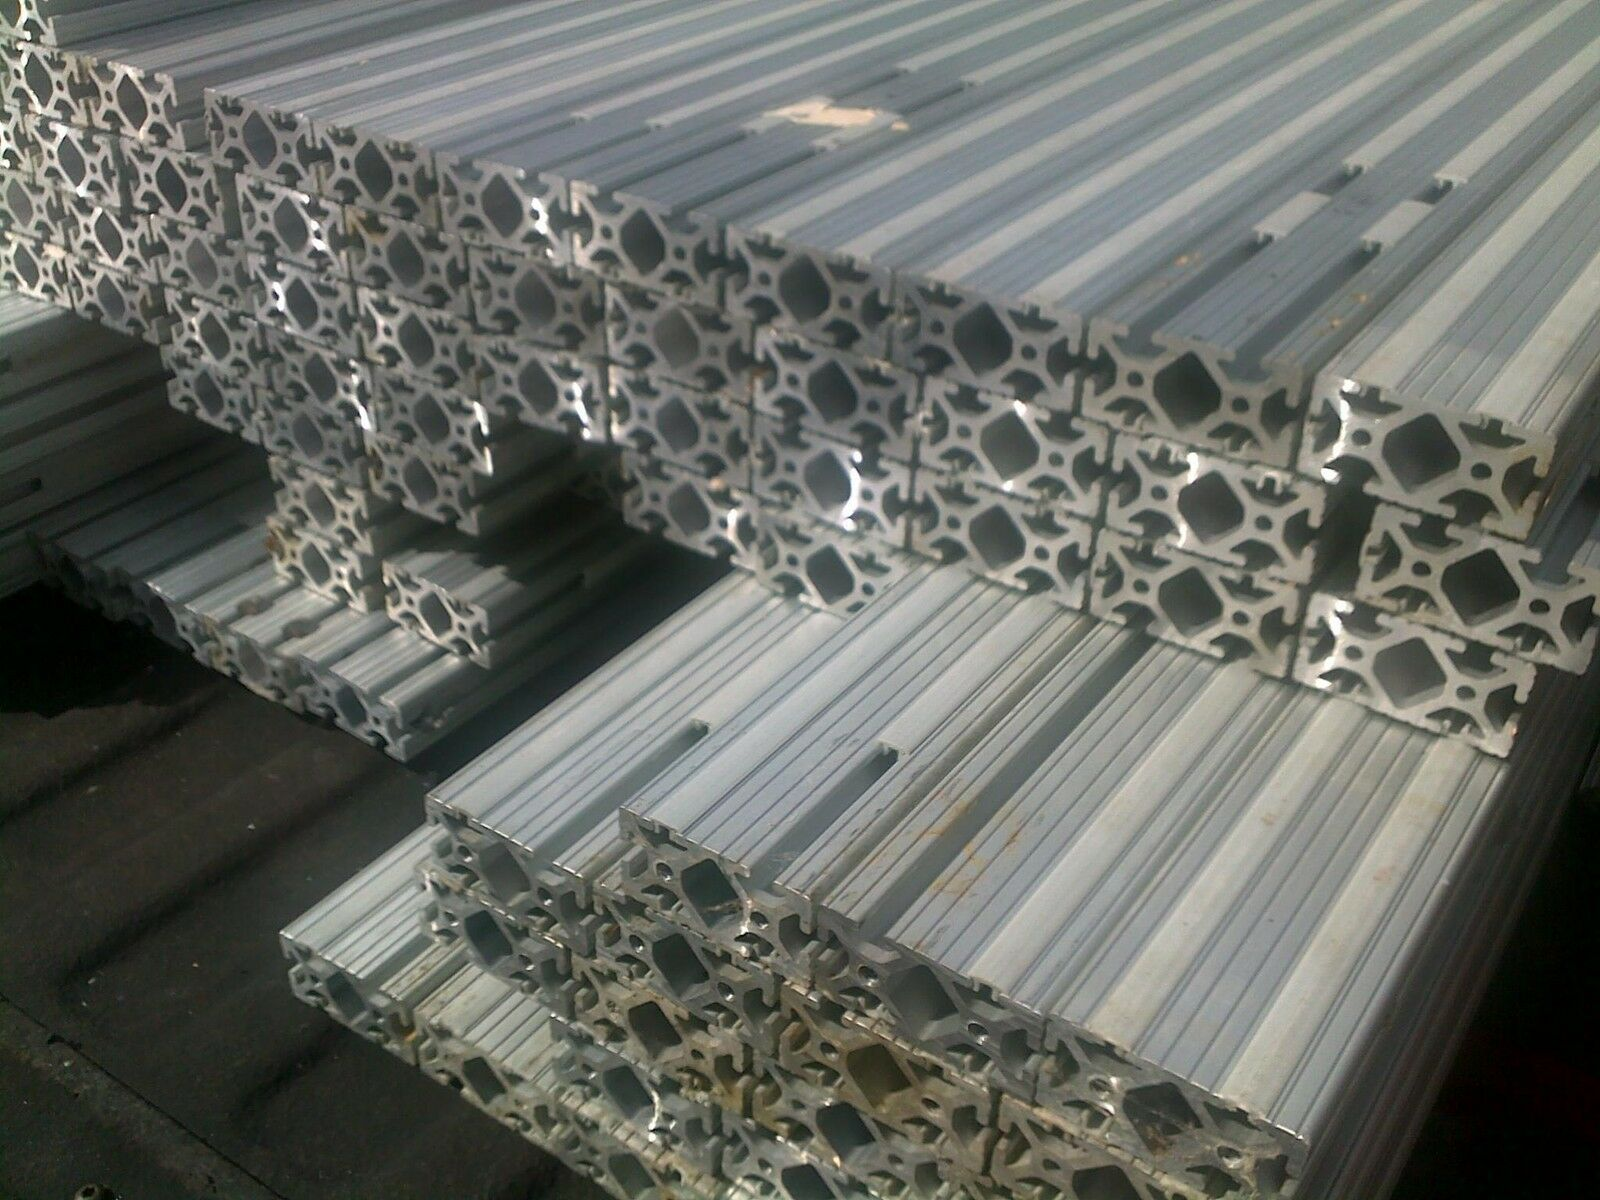 Aluminum extrusion extruded 8020 channel profile t slot ebay picture 1 of 2 sciox Choice Image